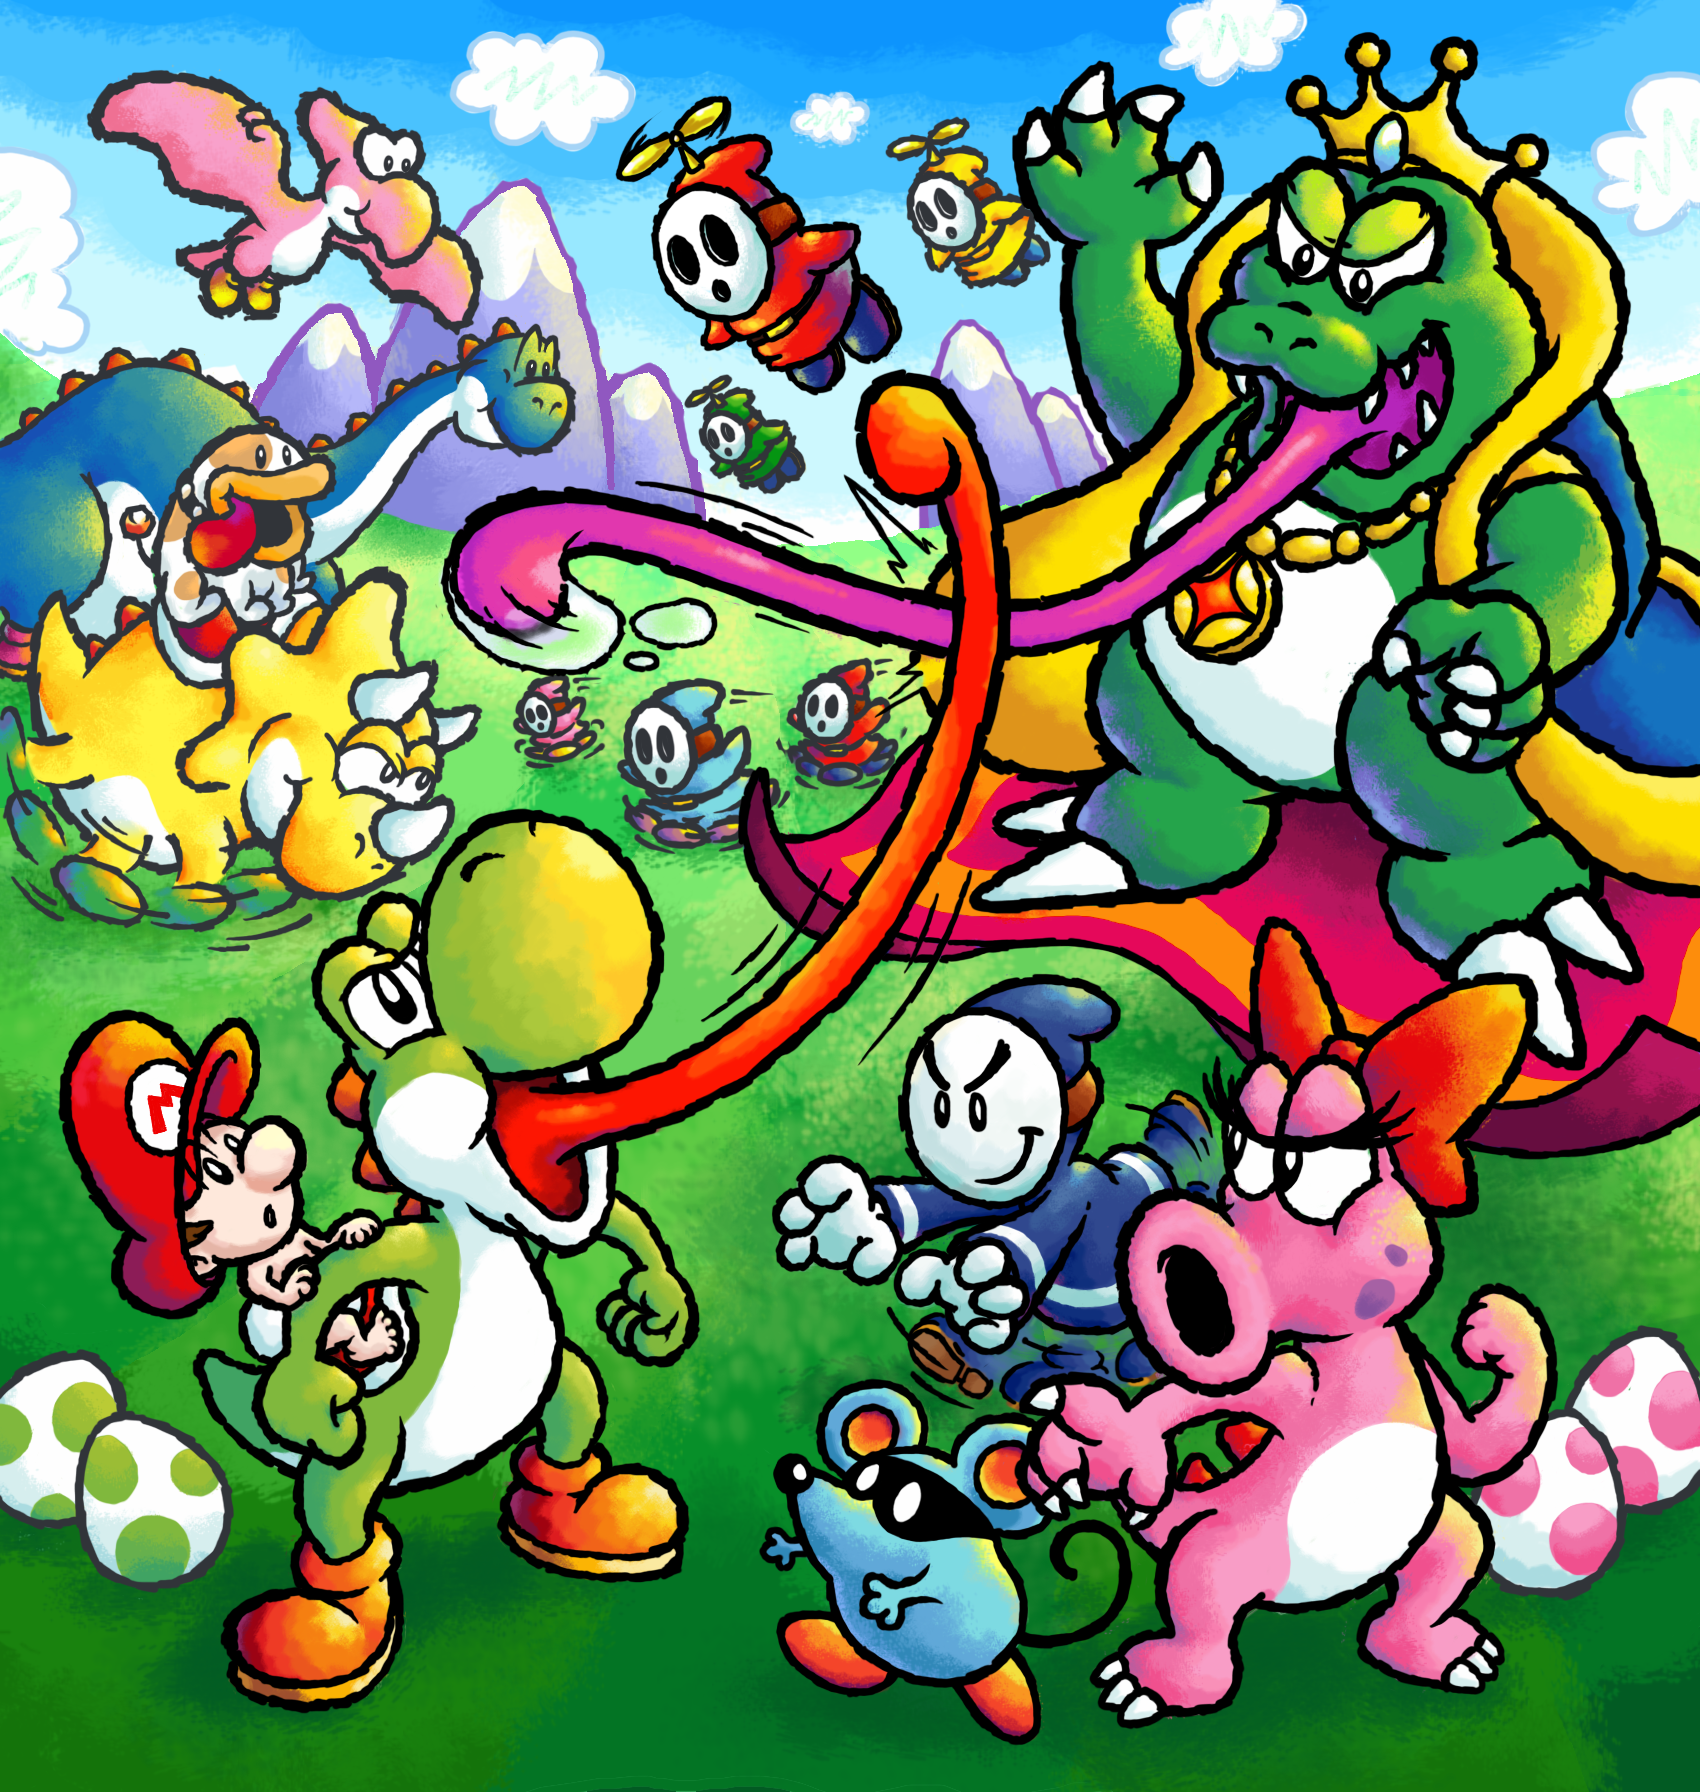 yoshi__s_island_of_dreams_by_mattdog1000000-d59umwi